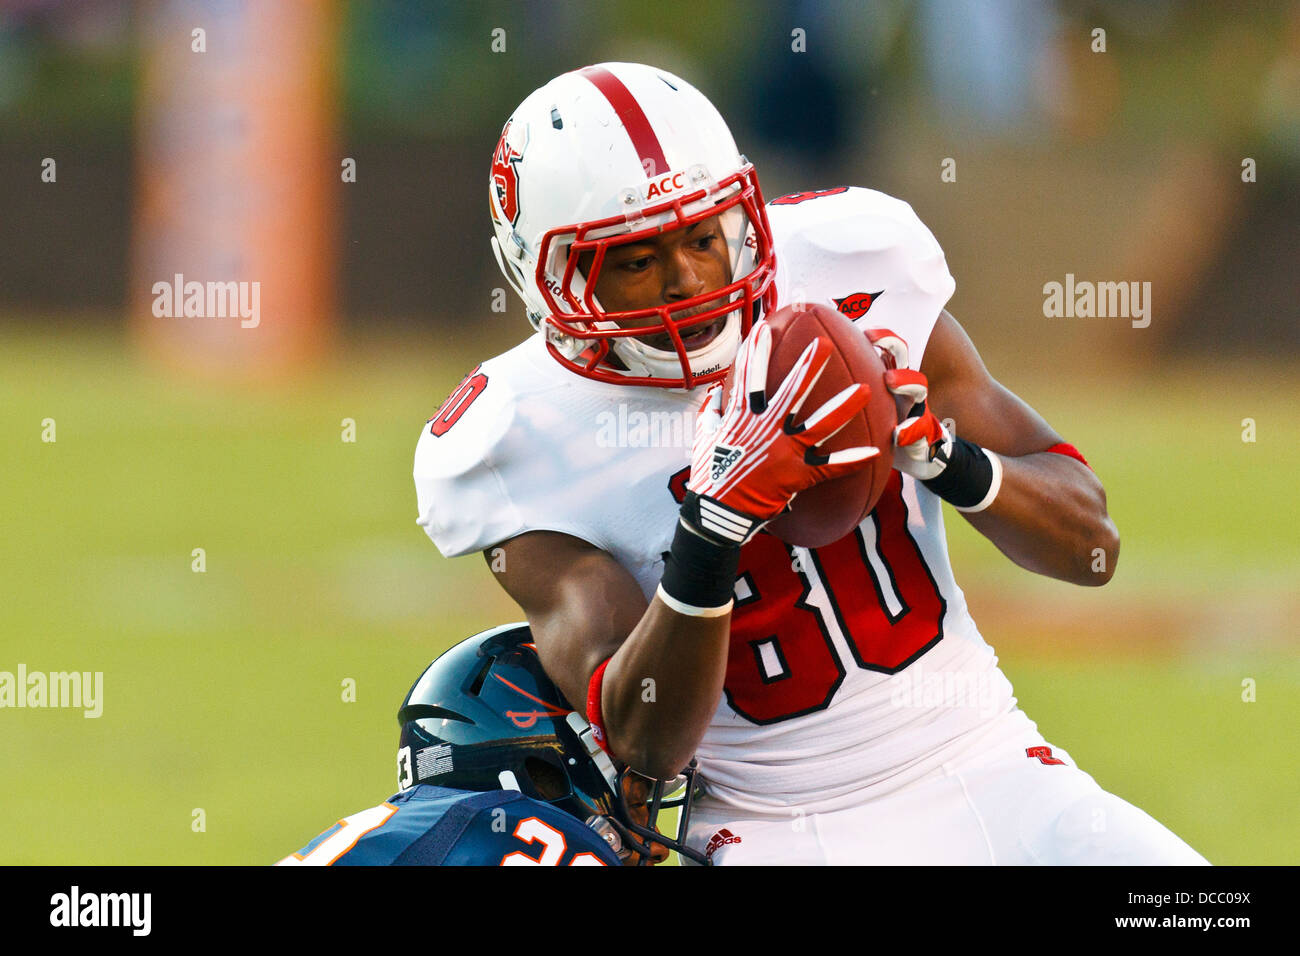 Football Player 80 High Resolution Stock Photography And Images Alamy